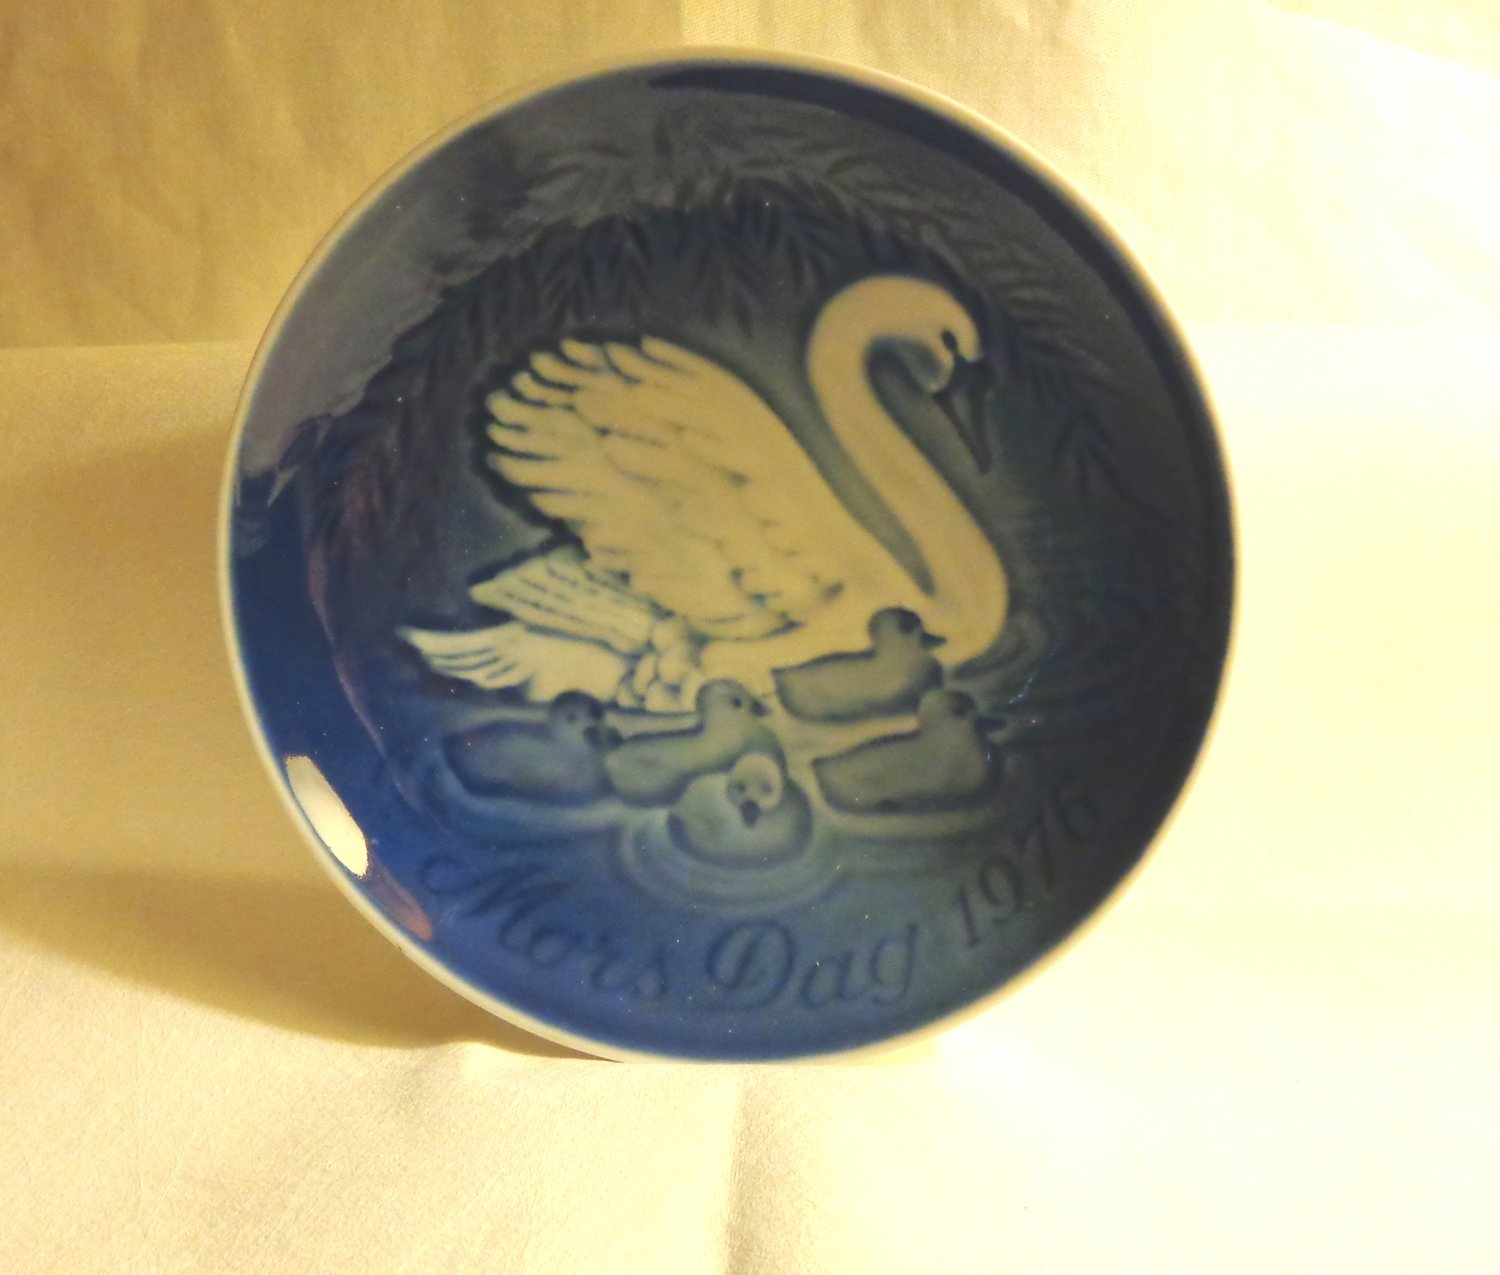 Bing and Grondahl 1976 Mother's Day plate Mors Dag swans cygnets blue BG porcelain hc3411